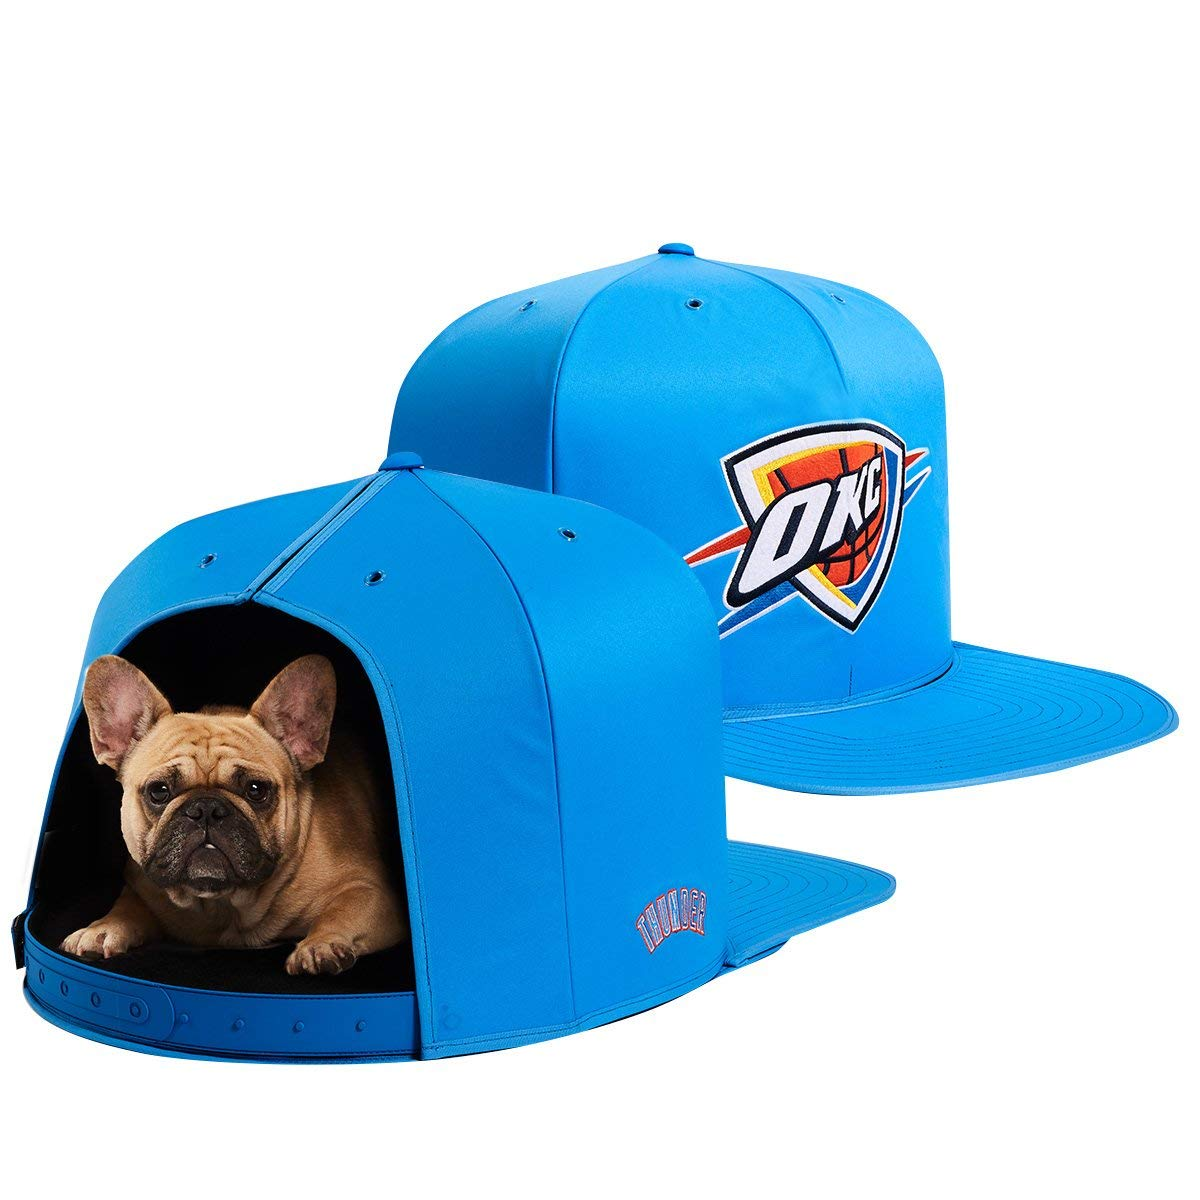 NAP CAP NBA Oklahoma City Thunder Team Indoor Pet Bed, Blue (Medium)